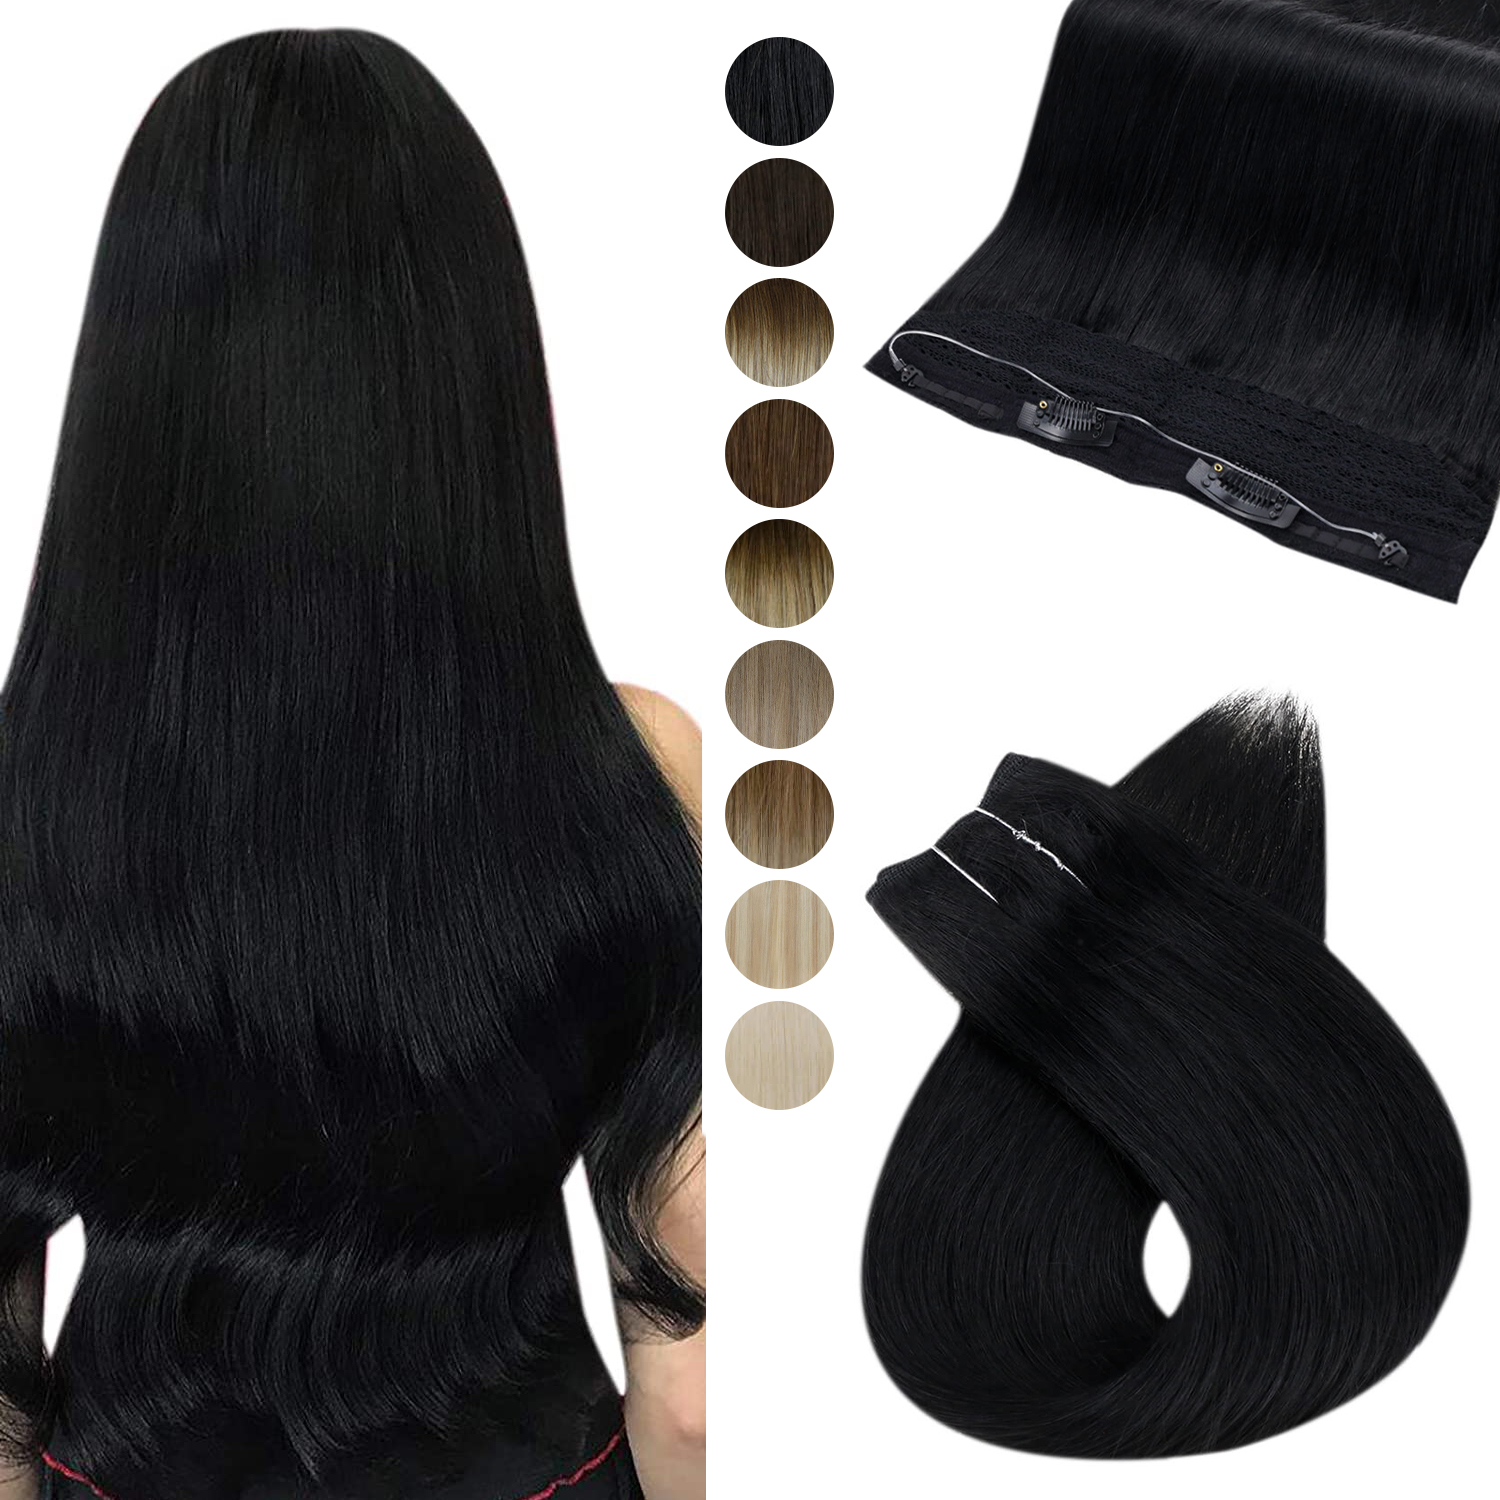 [Free Wire] Ugeat Halo Extensions Human Hair 10in Width Hidden Crown Hair Extensions Invisible One Piece Fish Wire Hair